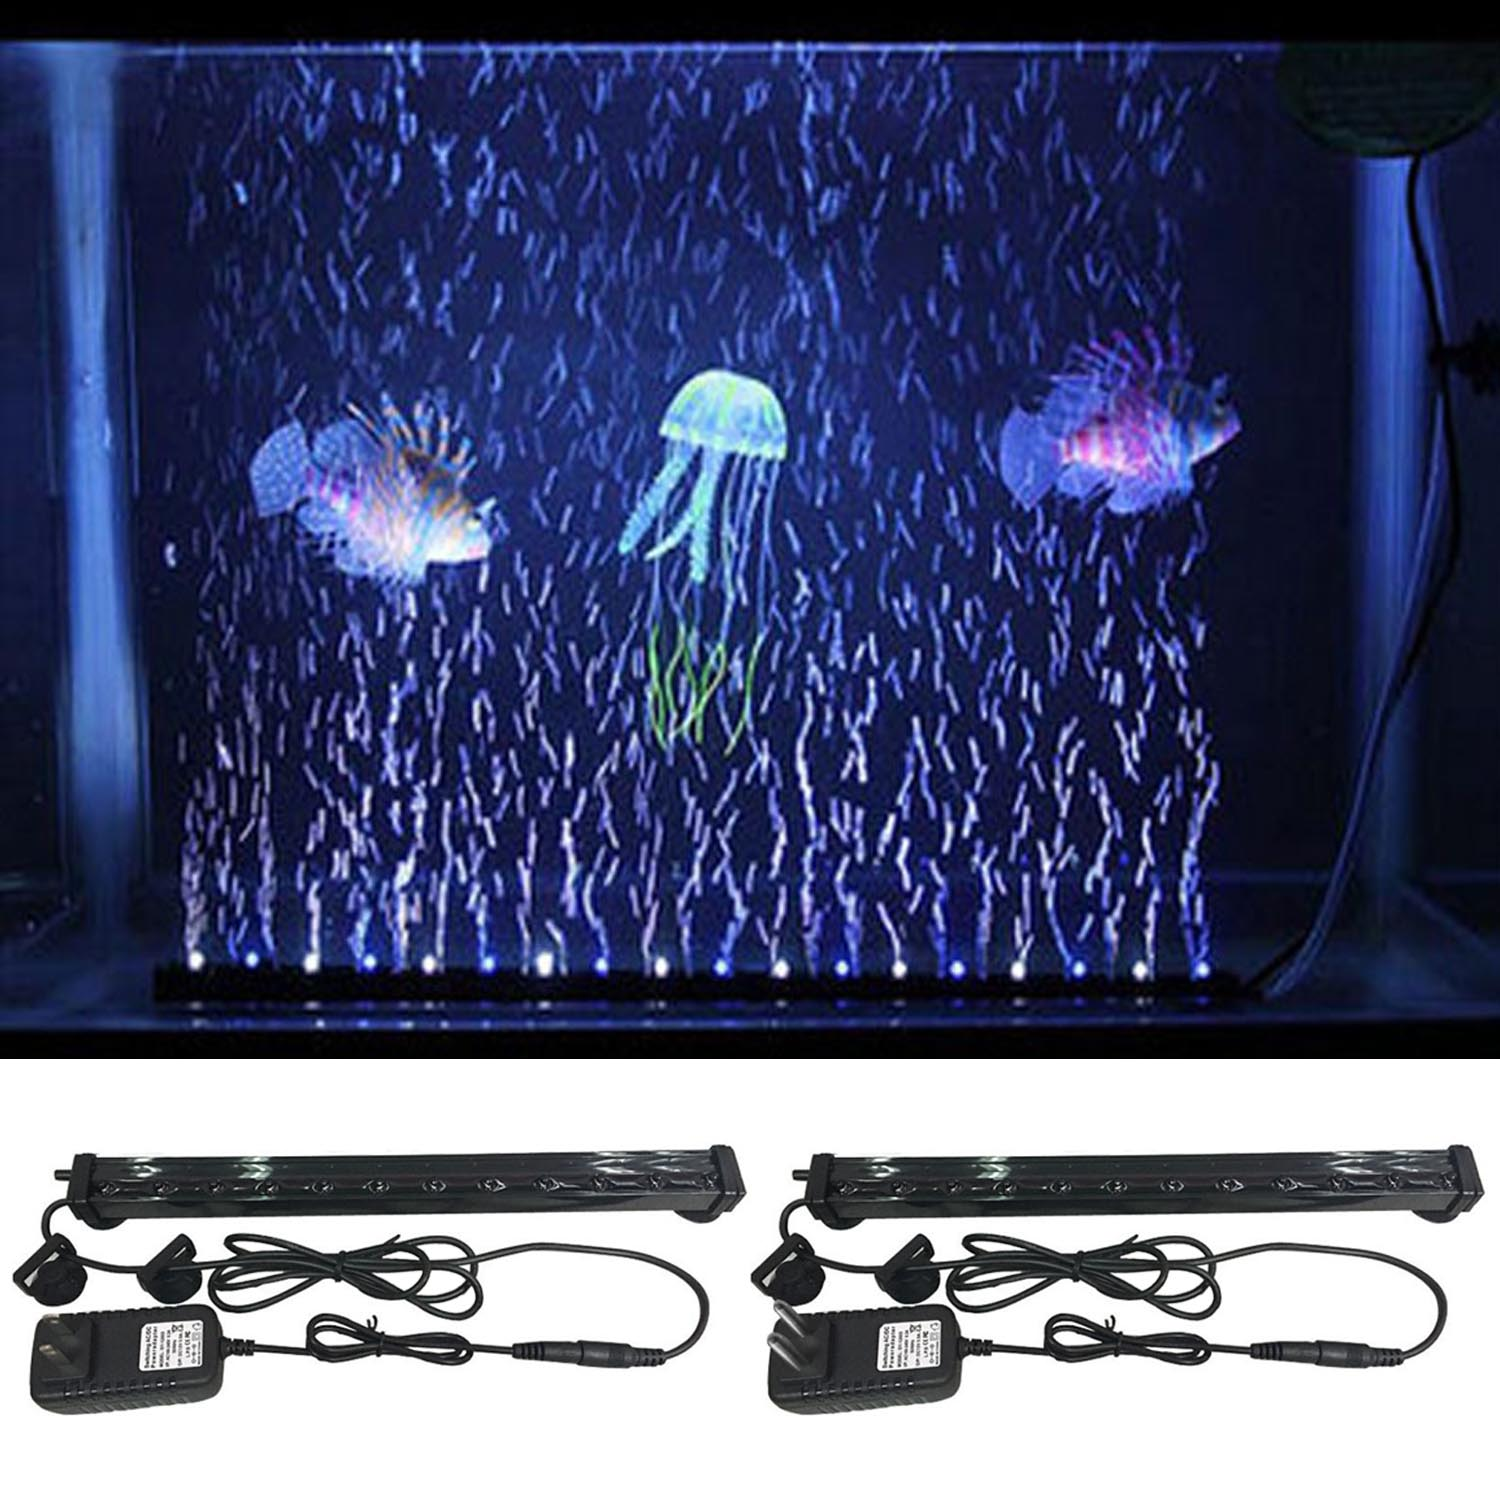 Behogar Multi Color Changing Underwater Submersible LED Light Aquarium Fish Tank Air Bubble Lights Changing Automatically